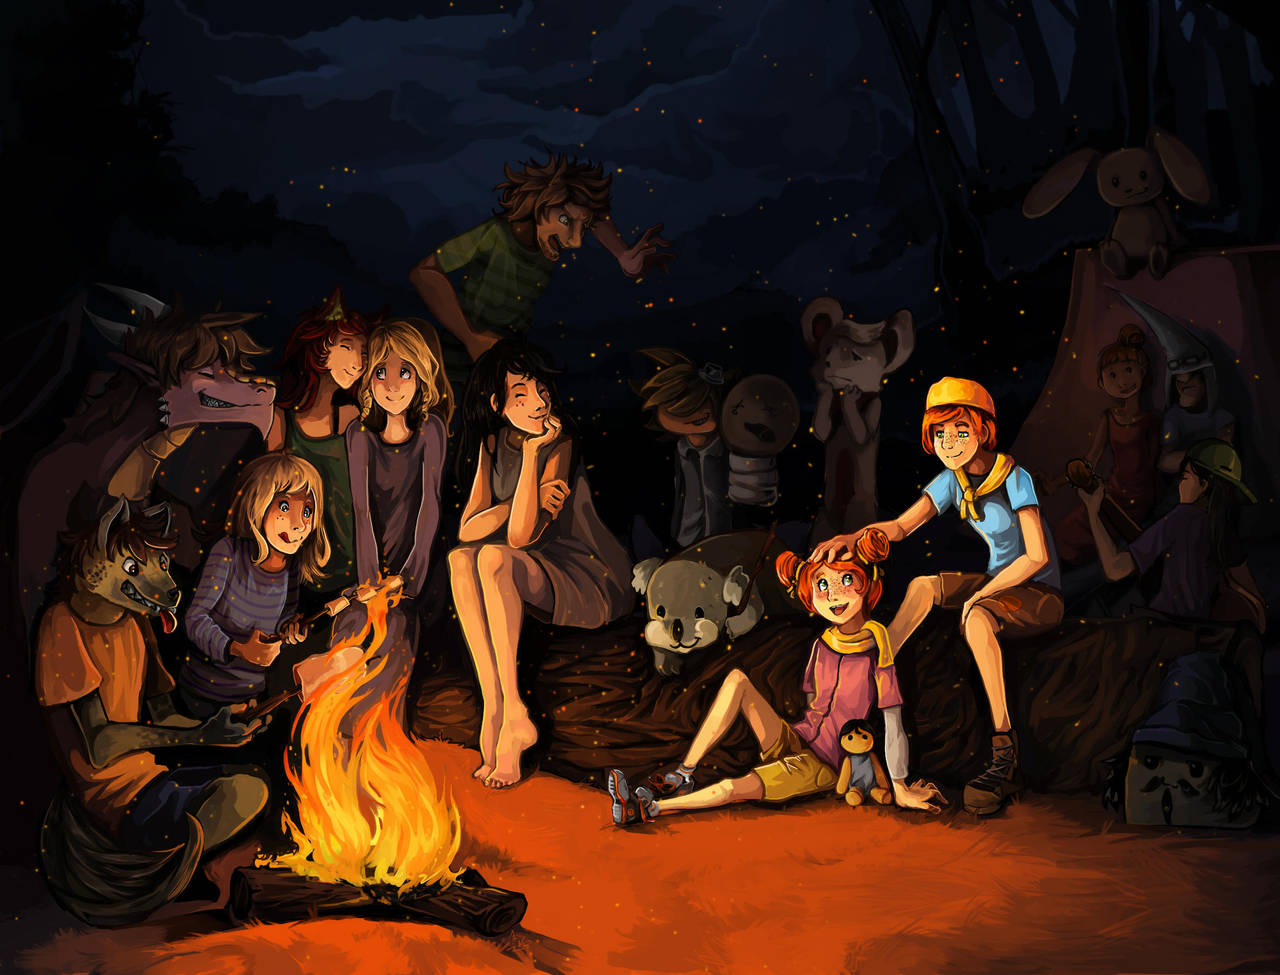 Friends around a campfire by LohiAxel